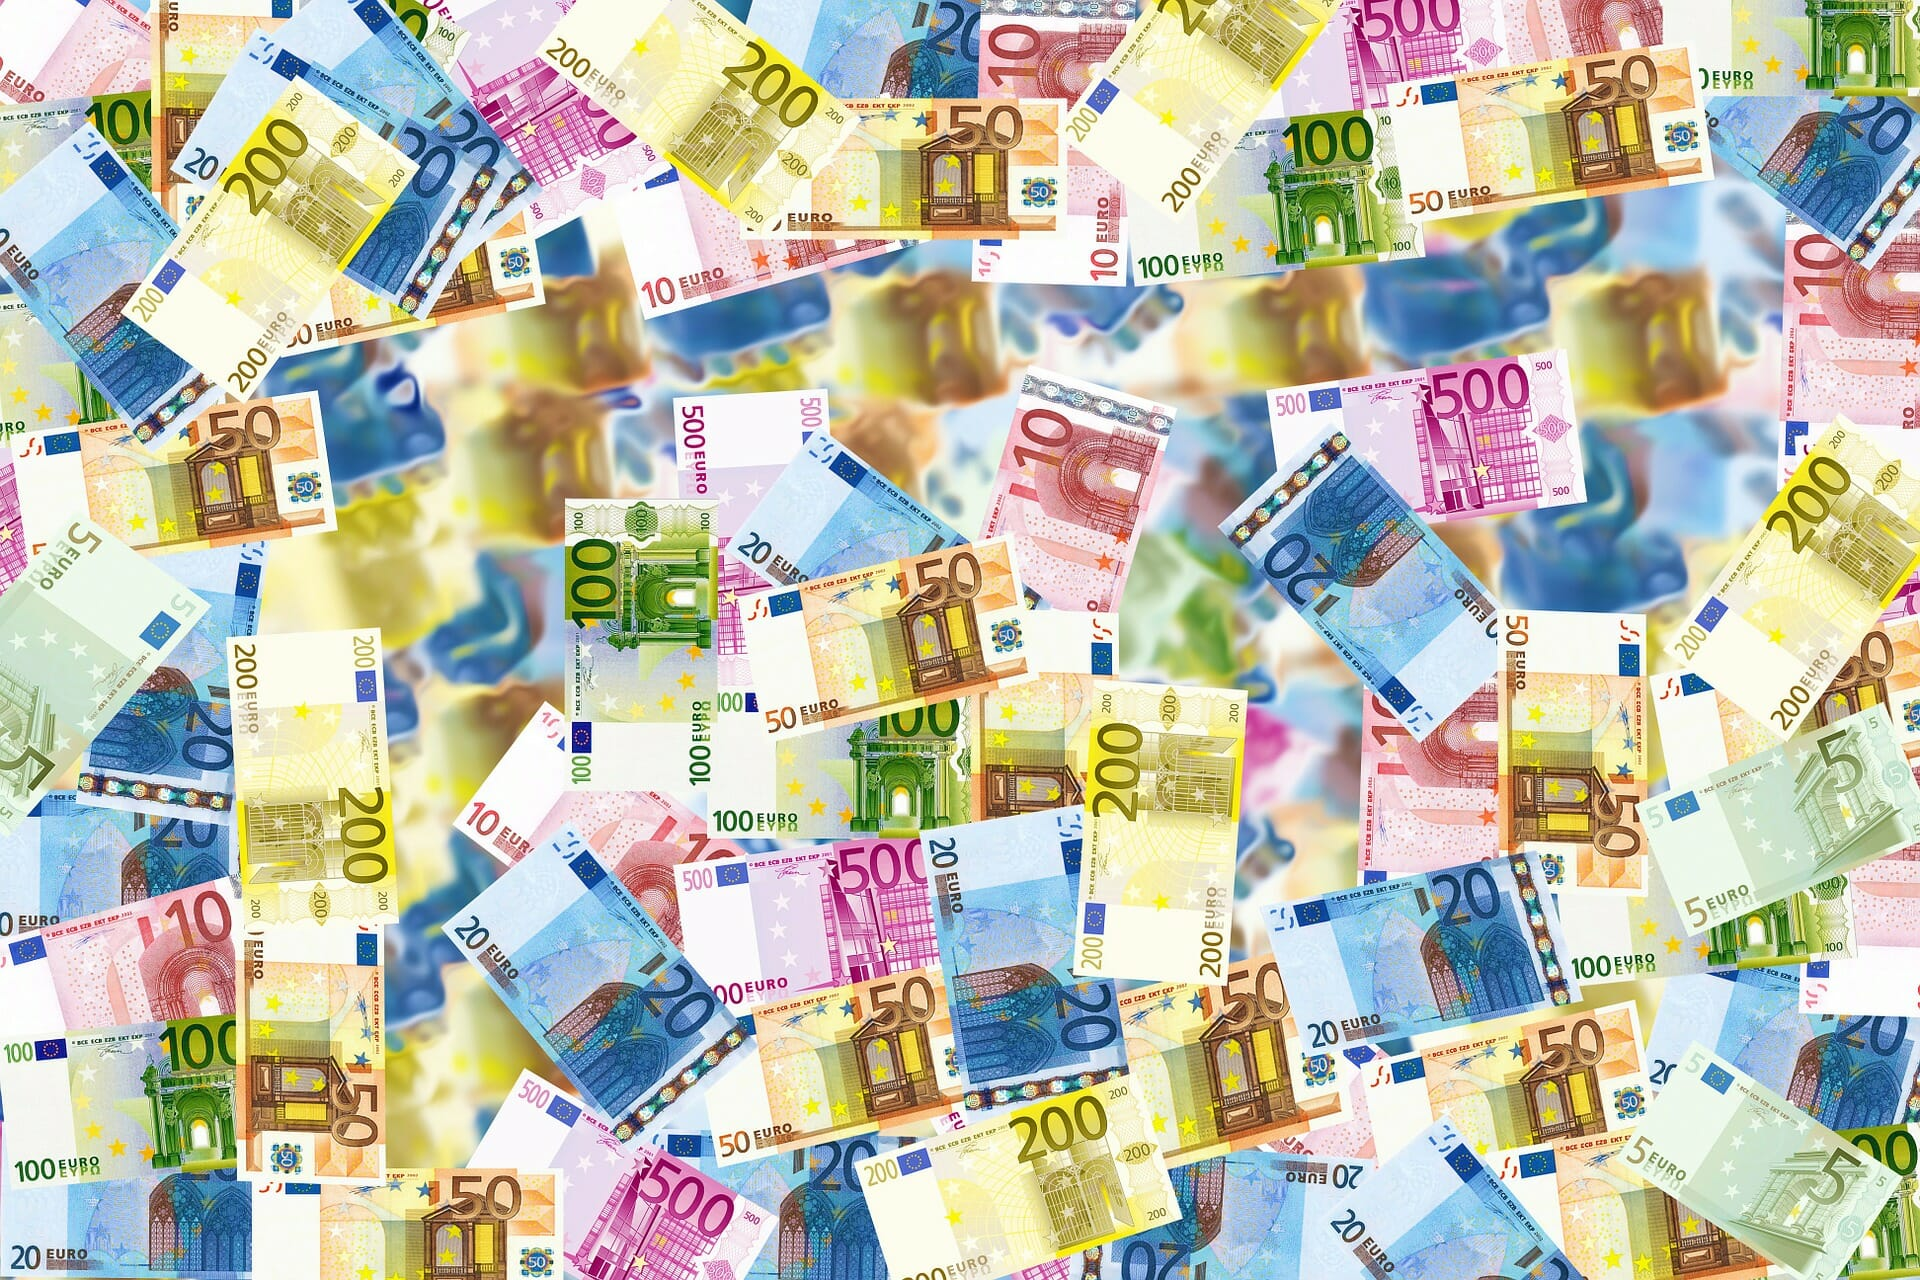 How to exchange money abroad